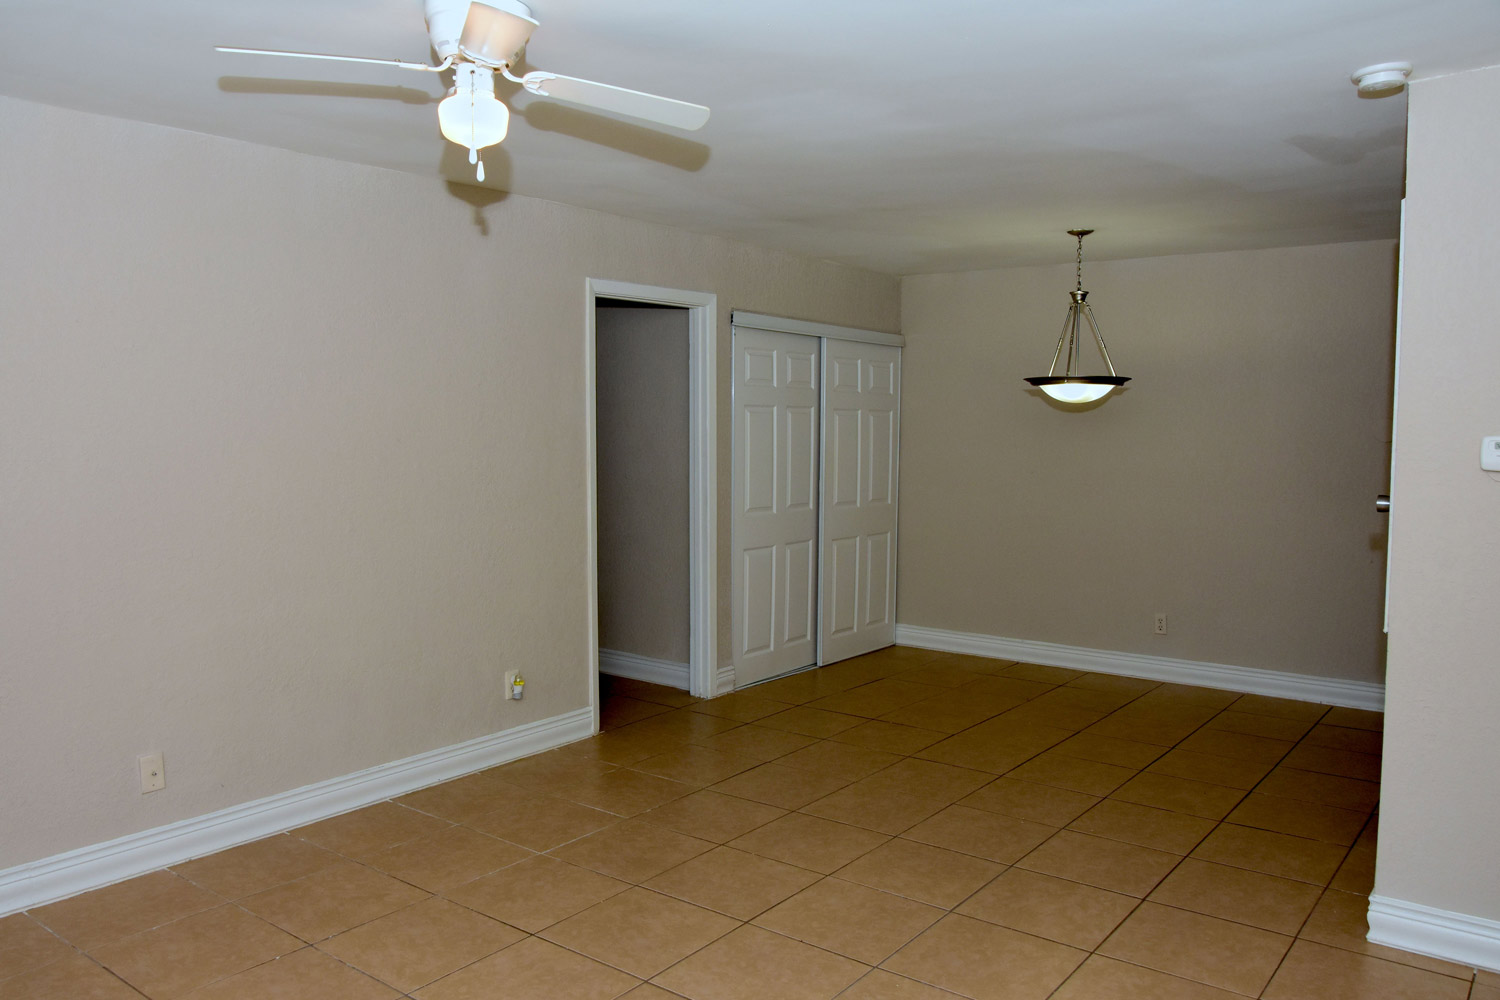 Dining Area at Texas Angleton Ranch Apartments in Angleton, TX